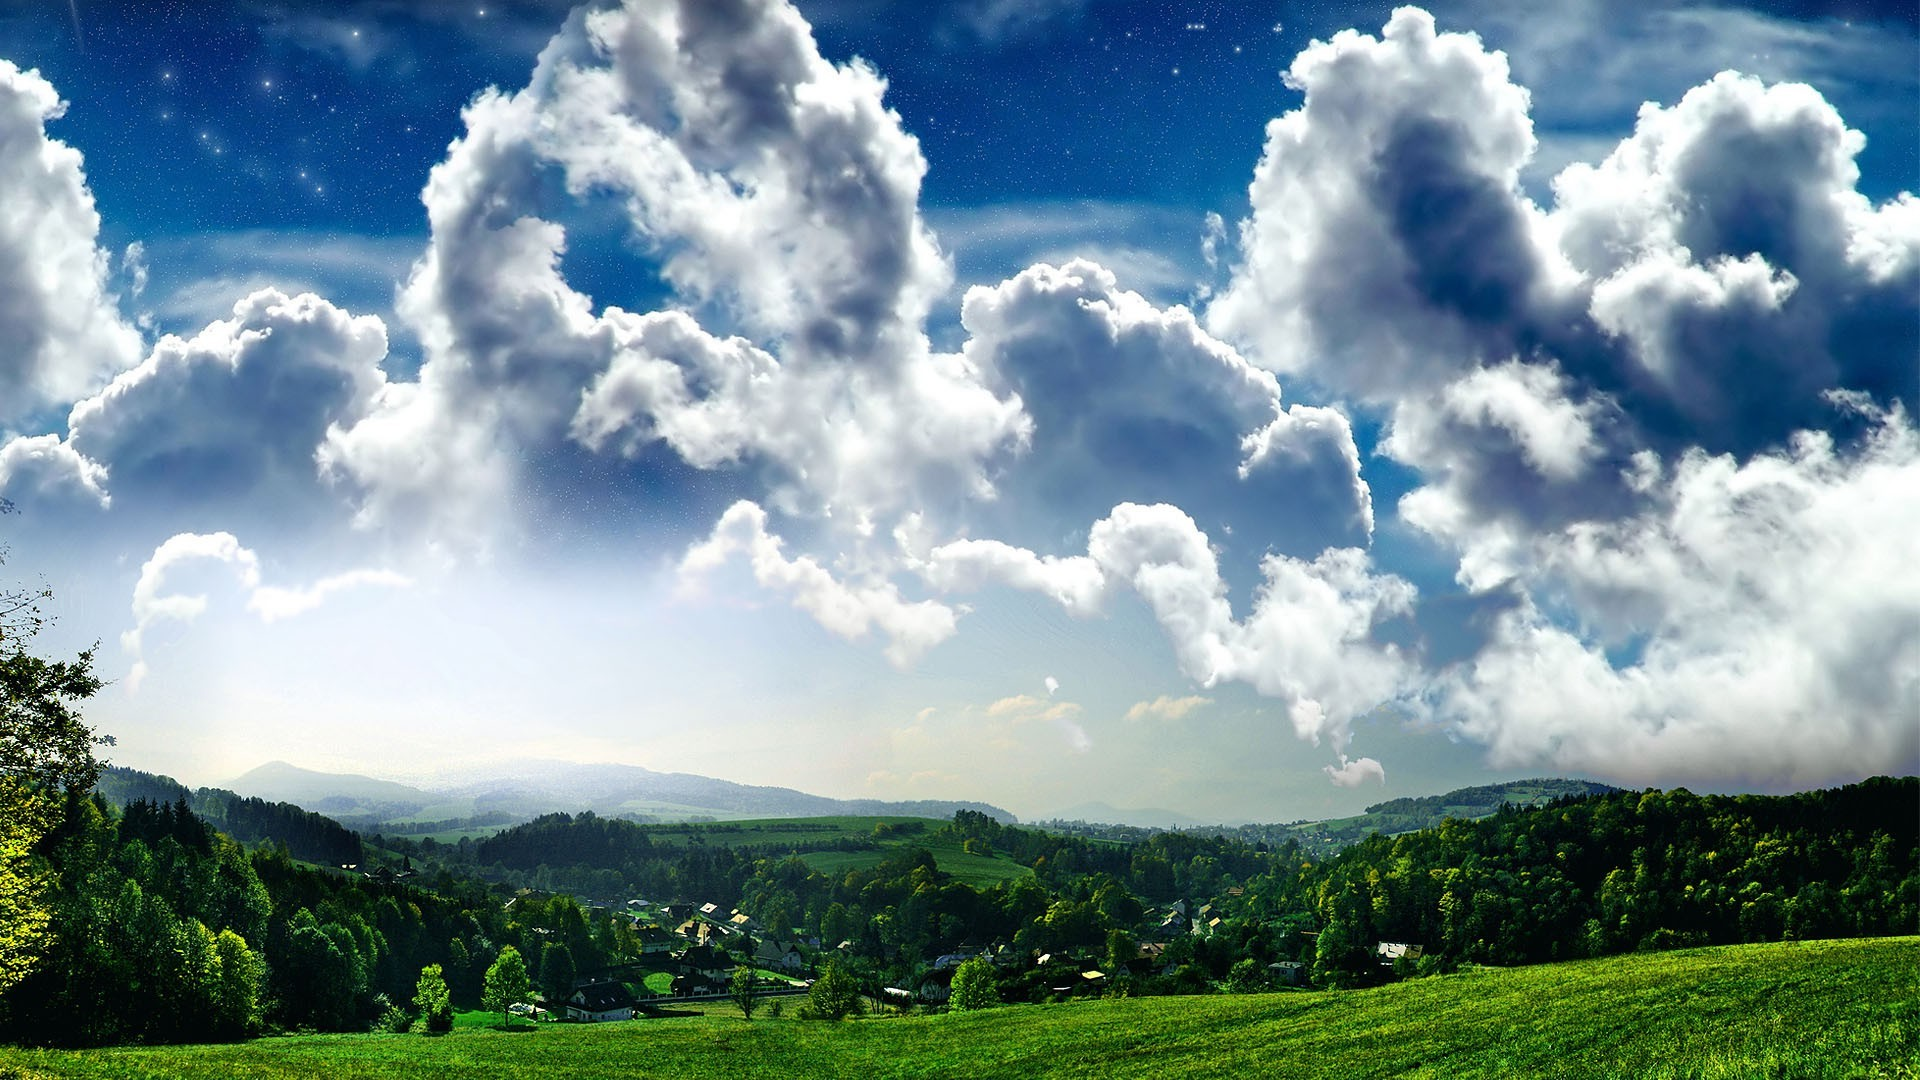 fields meadows and valleys nature landscape sky rural summer tree cloud grass outdoors hill fair weather agriculture countryside field pasture farm wood travel hayfield